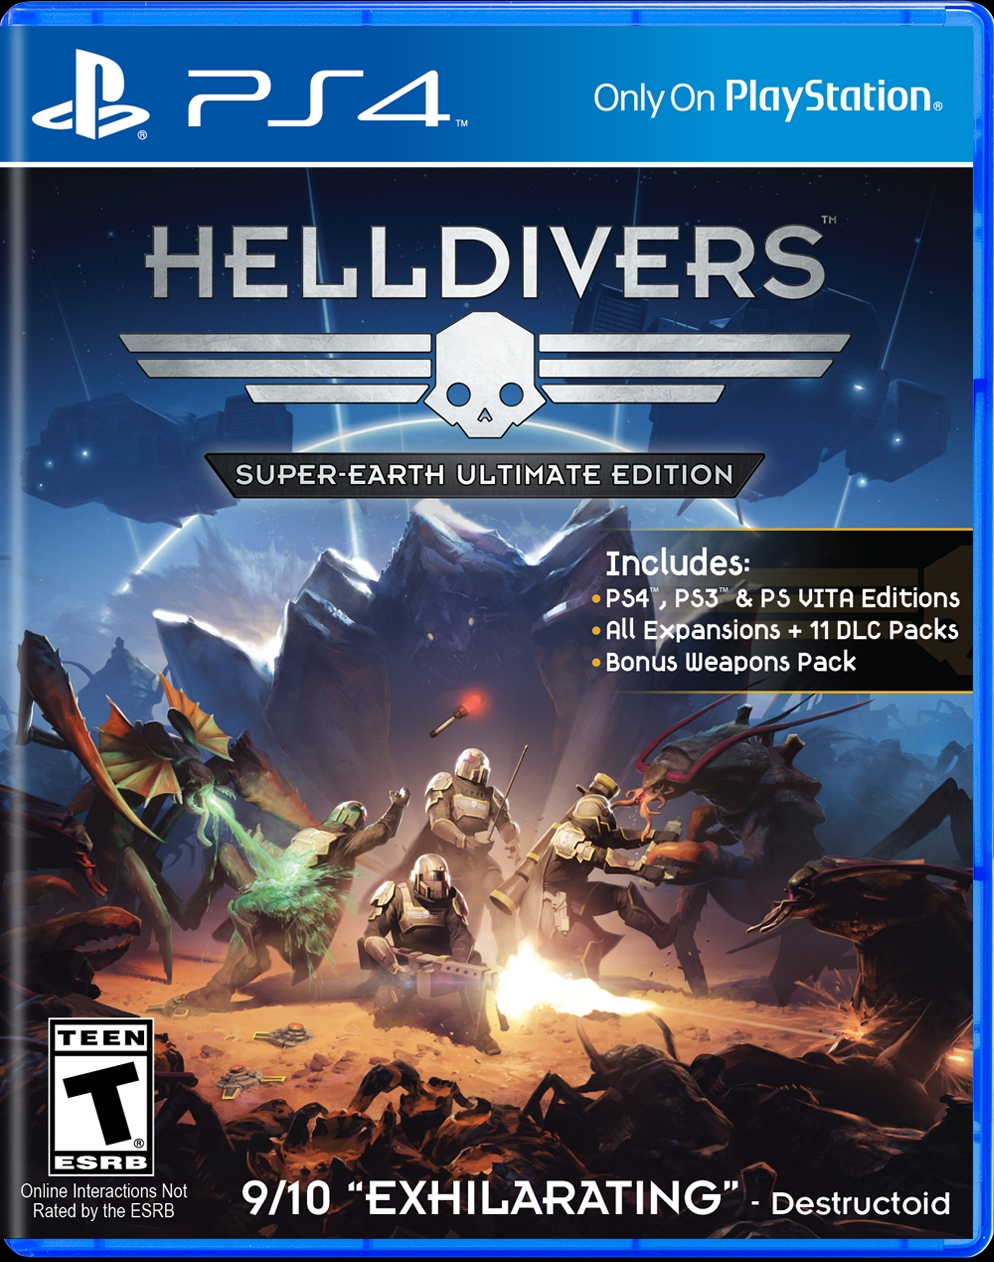 Helldivers PS4 Retail Release Due Out In August Gematsu